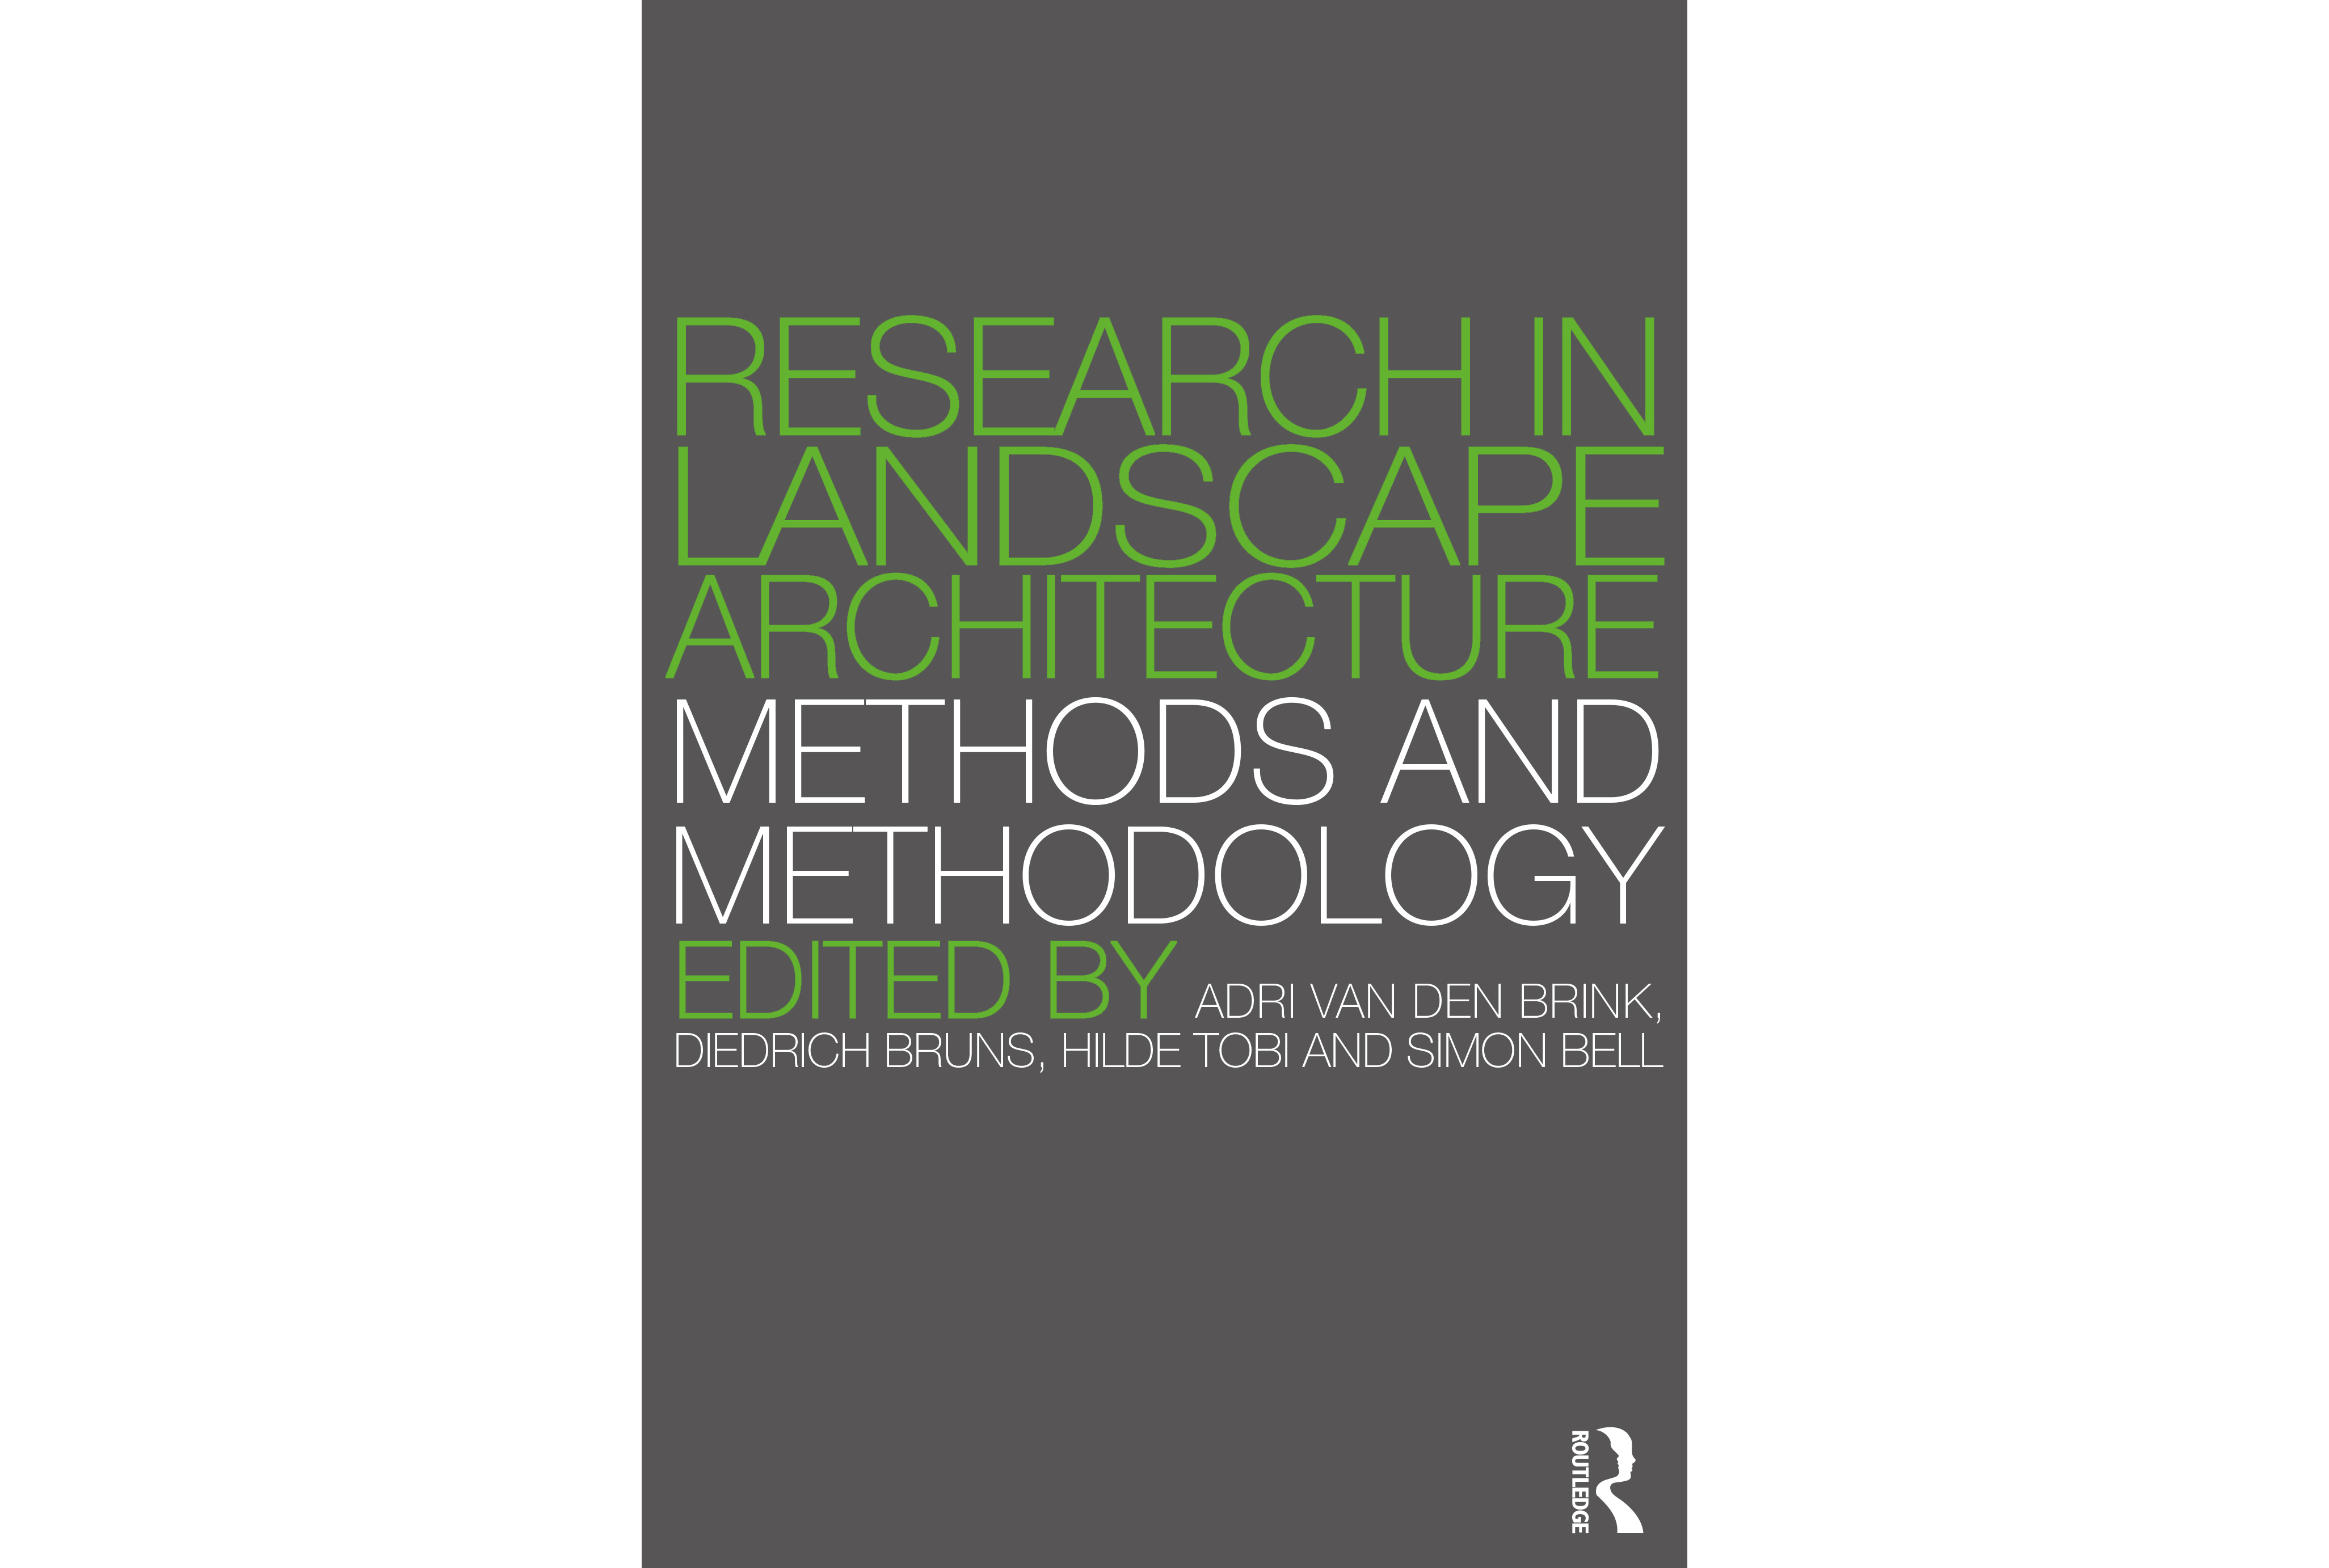 Figure 15. Research in Landscape Architecture, edited by Van den Brink at al.